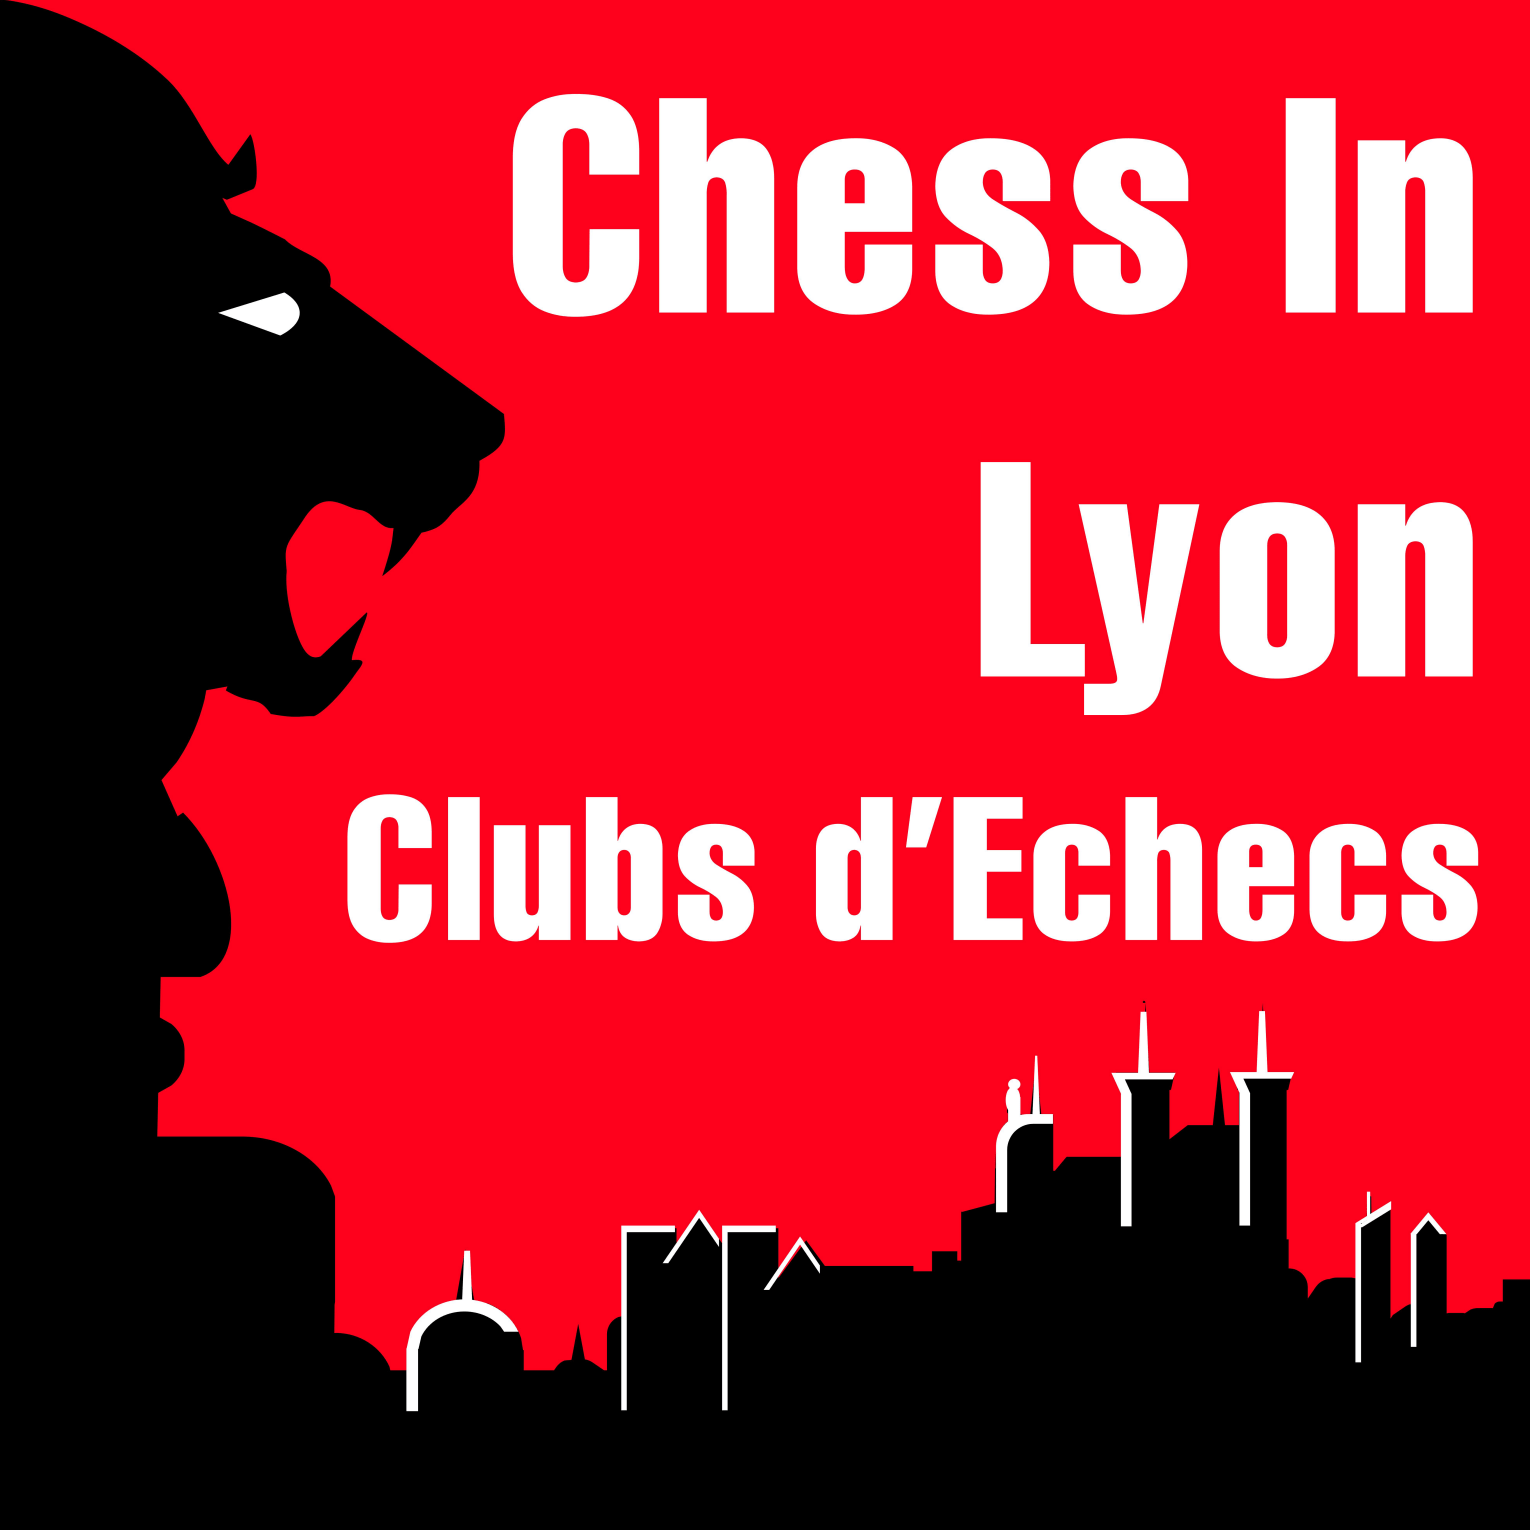 Chess In Lyon